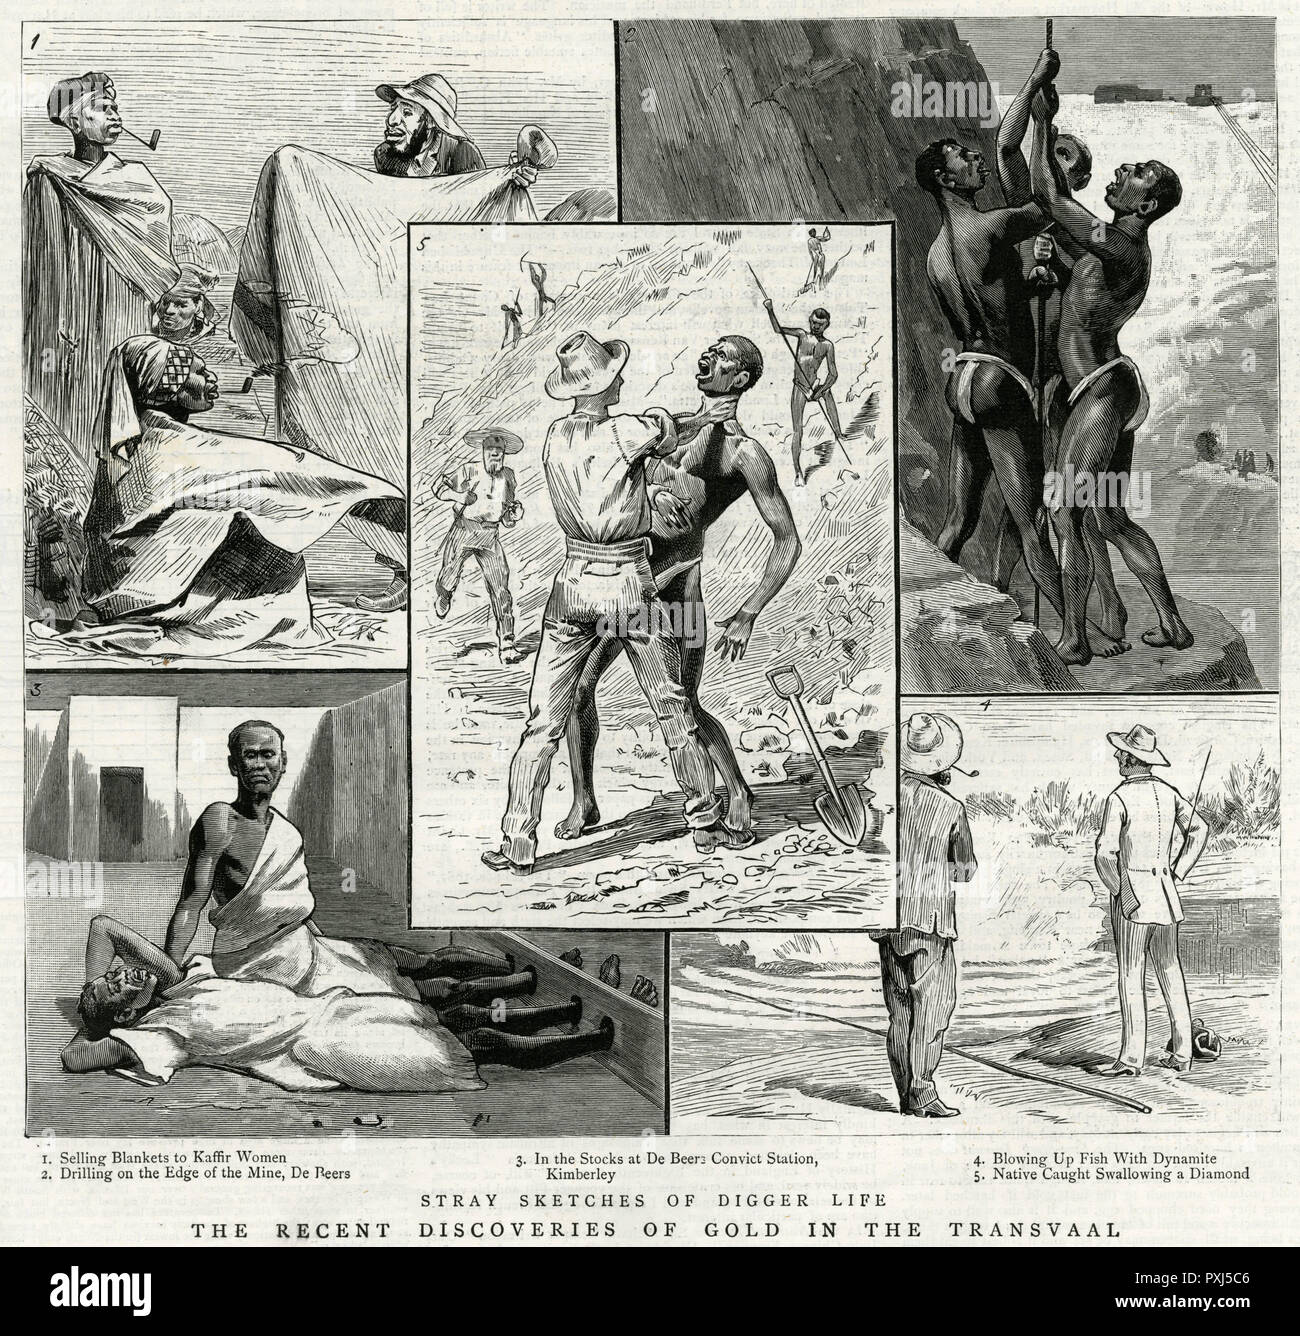 Various scenes showing the mistreatment of black workers in the diamond mines of South Africa.     Date: 1887 - Stock Image